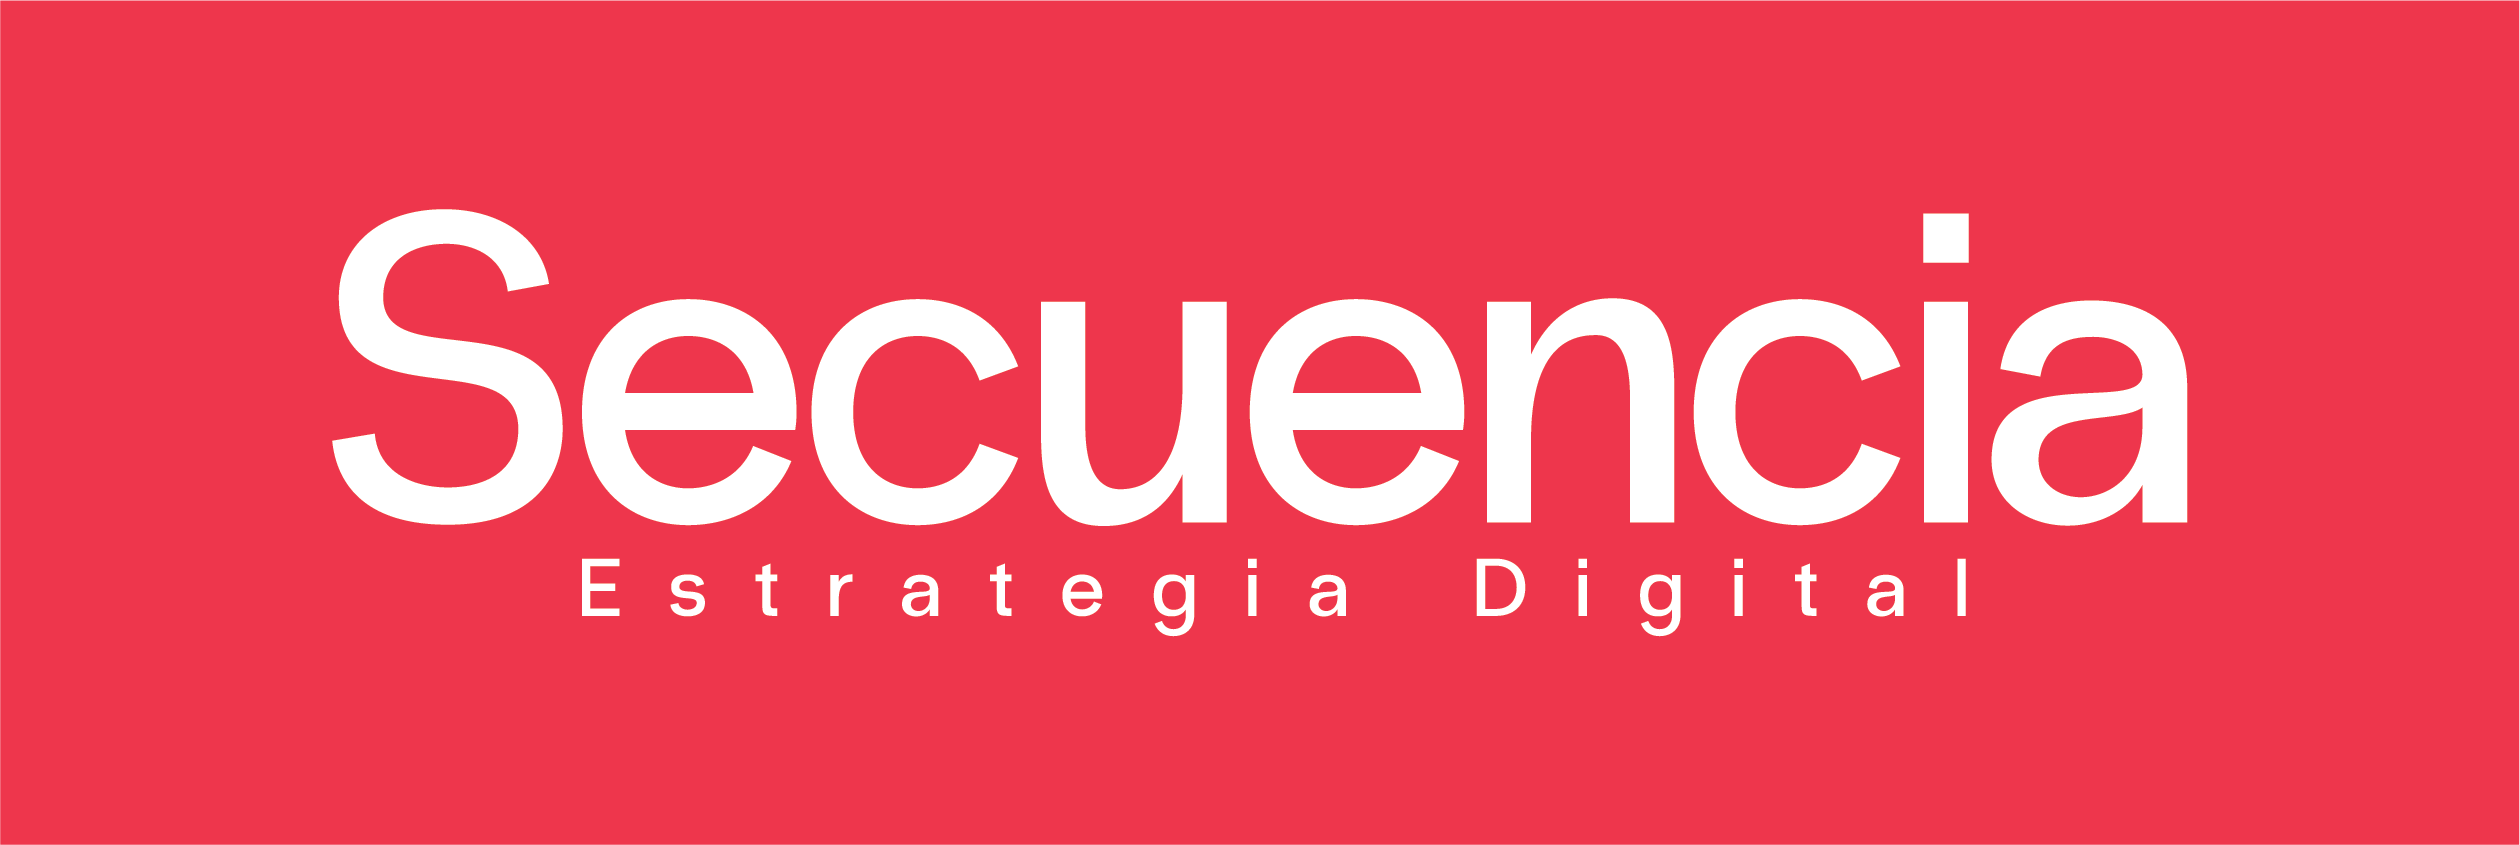 Secuencia | Estrategia Digital